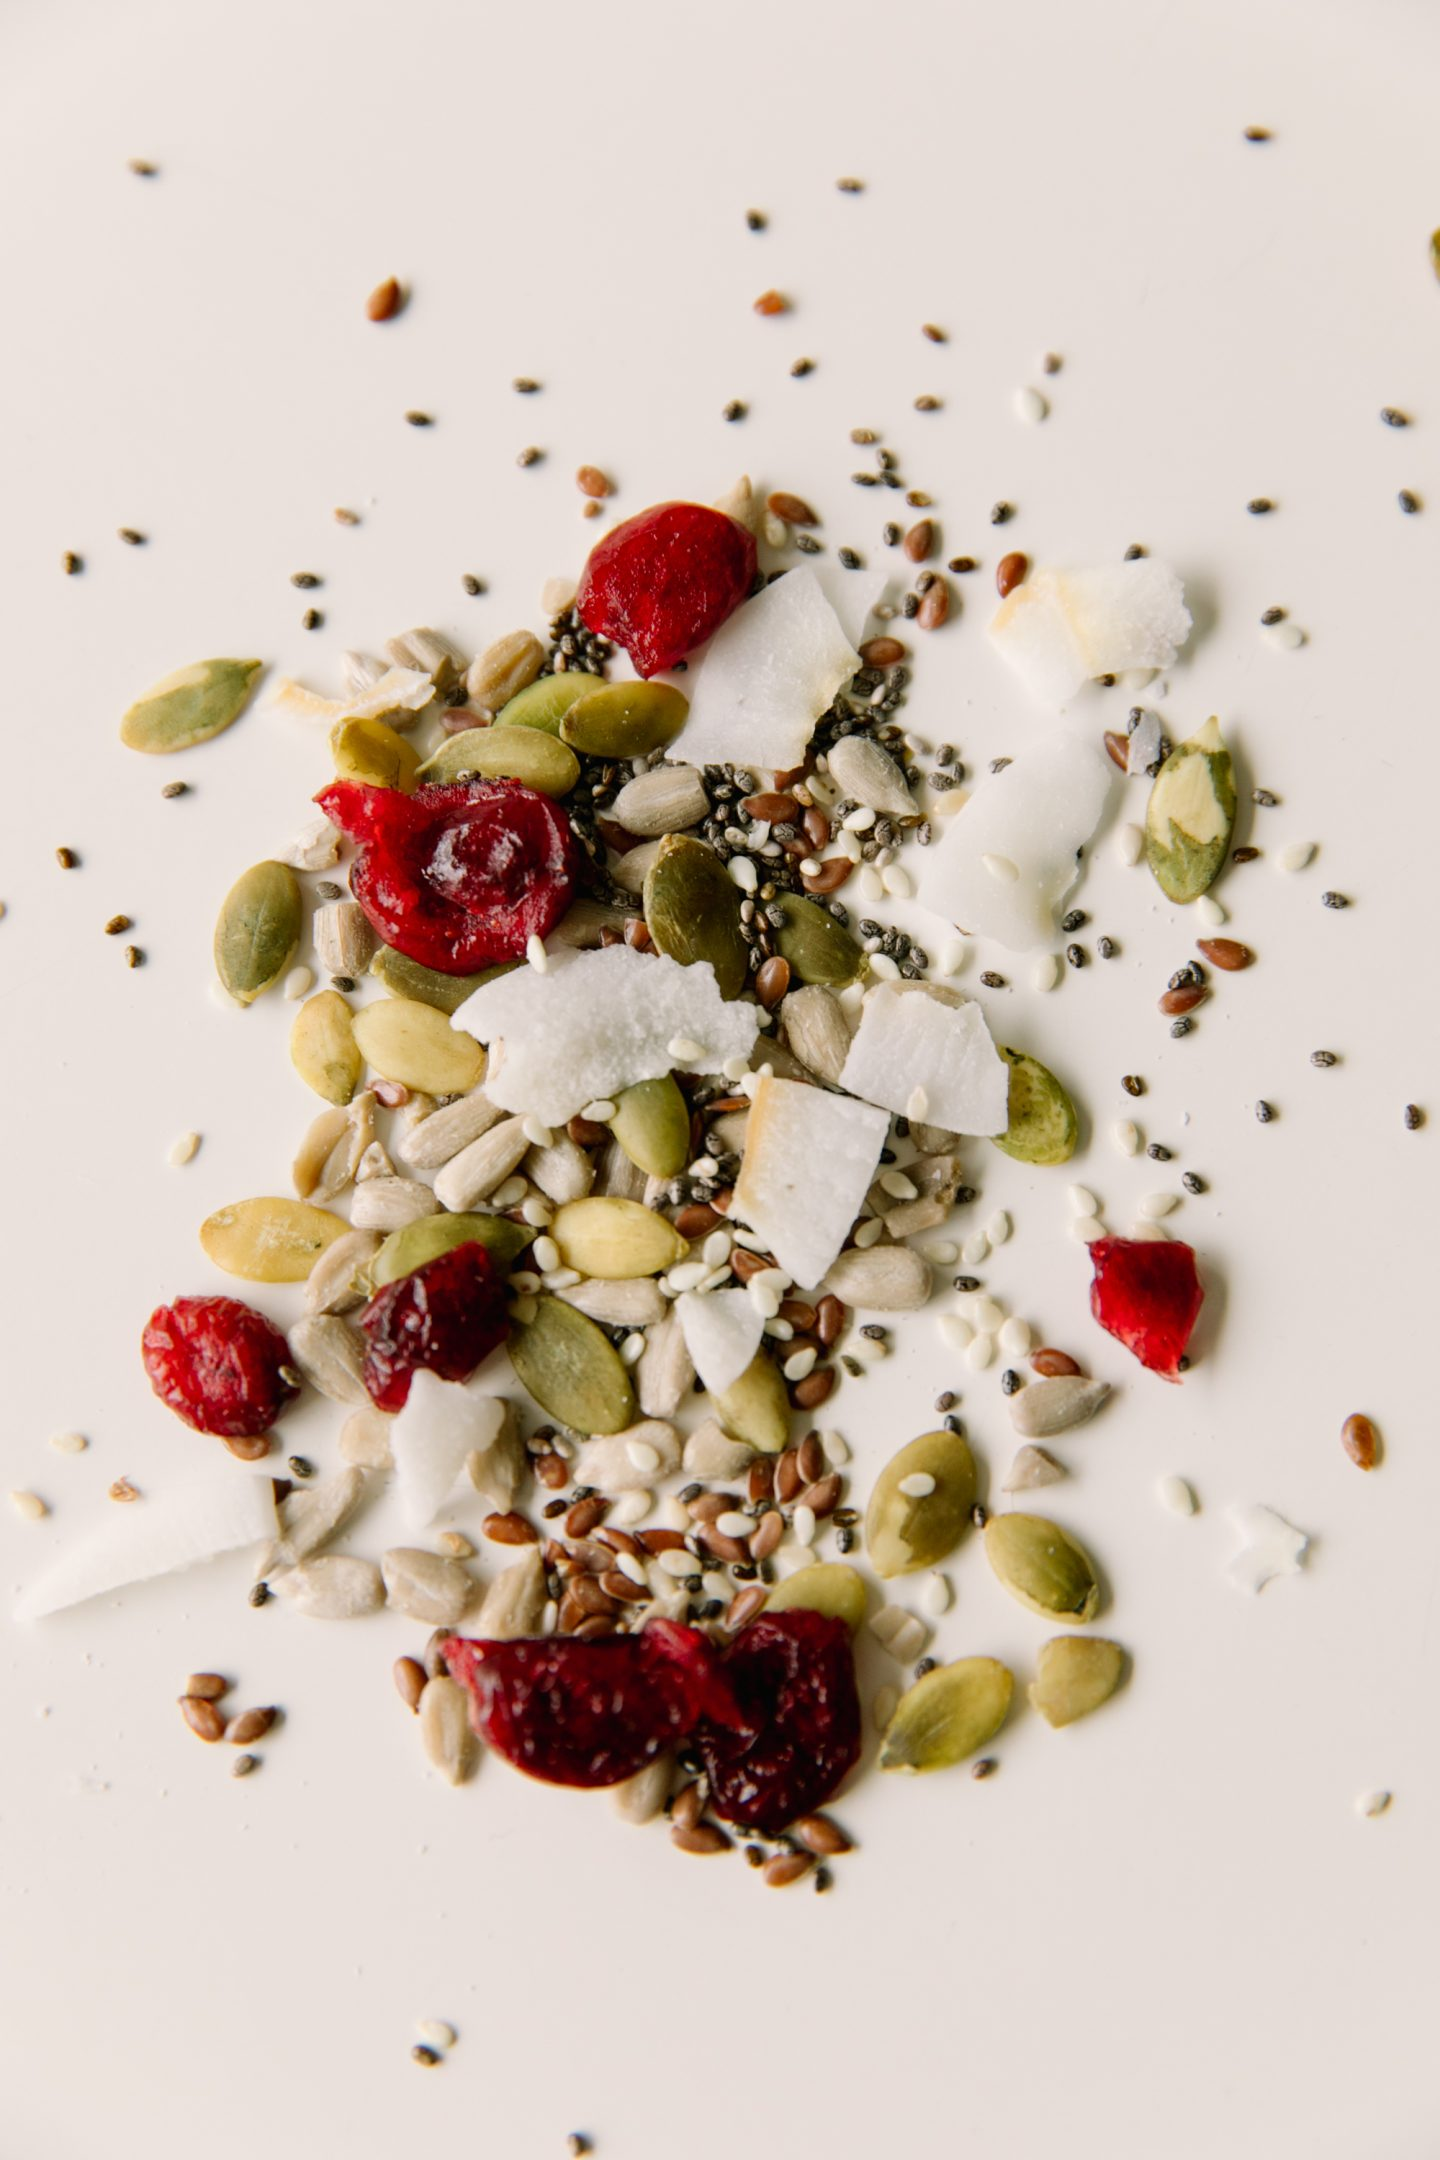 The Nut Bar Recipe You Need To Know